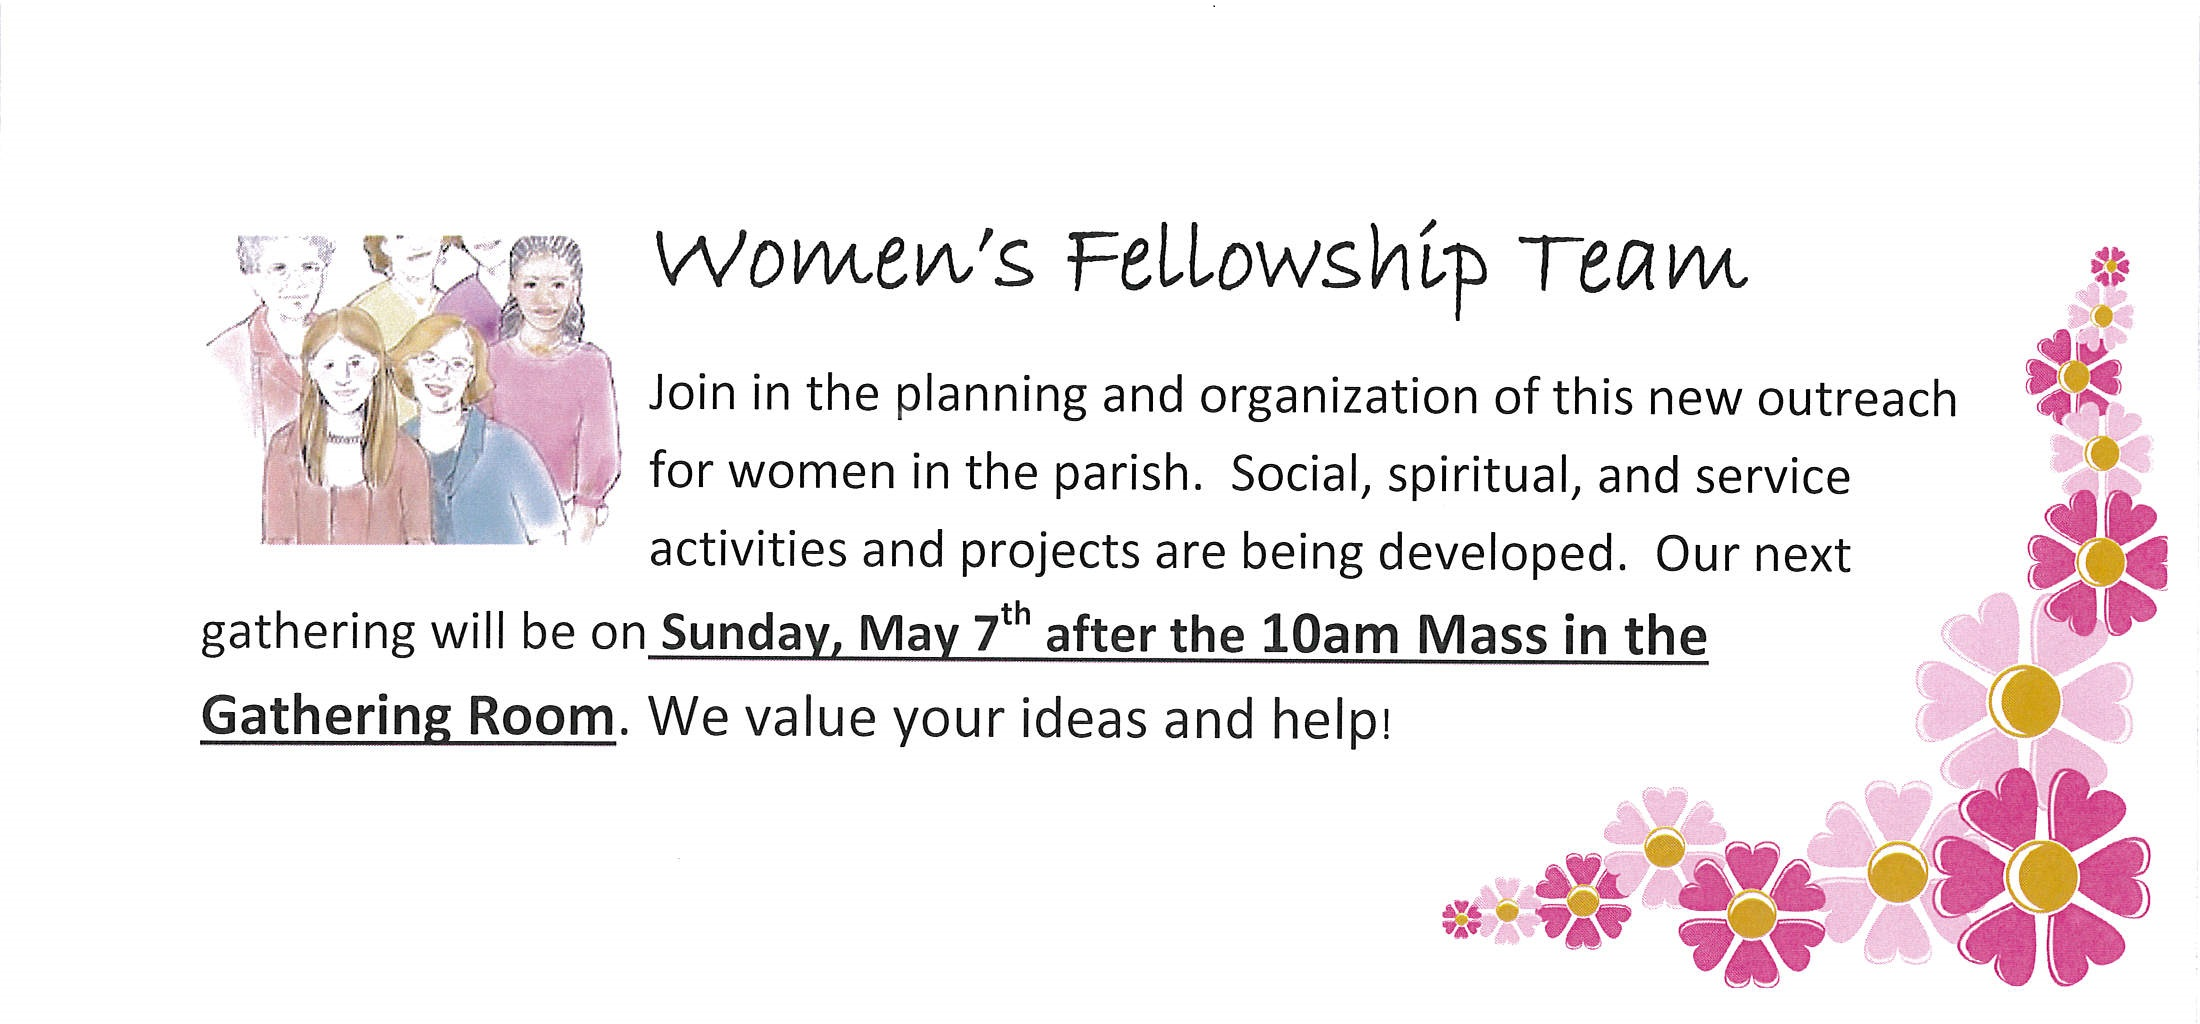 women's ministry - next breakfast meeting sunday, may 7th - the